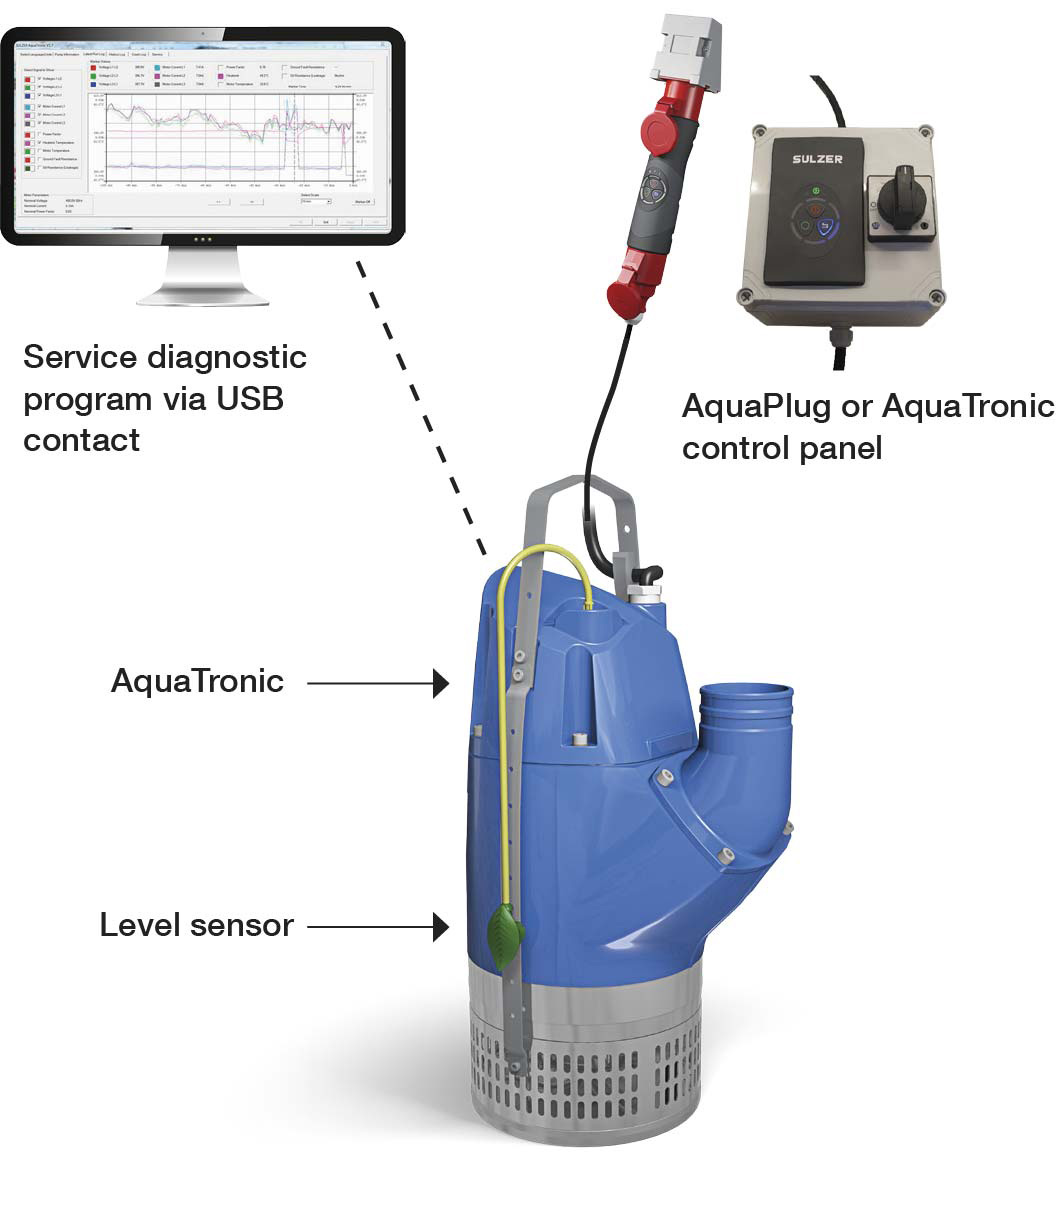 Level sensor, AquaPlug or AquaTronic control panel and service diagnostics program are monitoring options for pumps with built-in AquaTronic